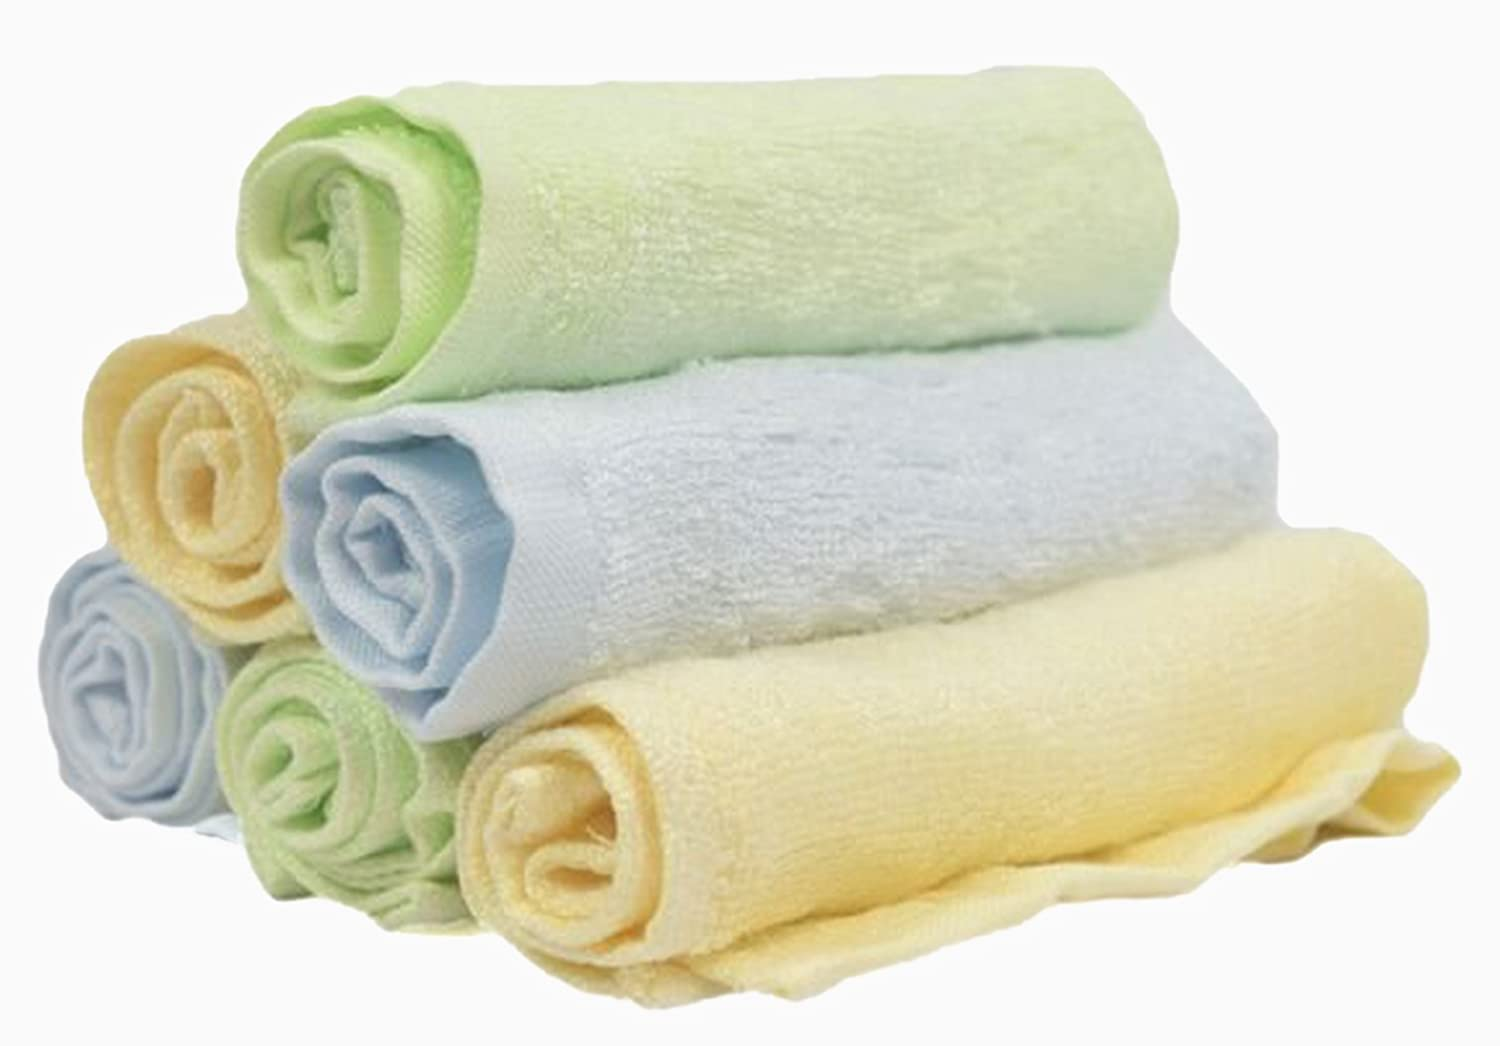 """Best Bamboo Baby Washcloths Luxuriously Soft Natural Organic Hypoallergenic Towels For Bath, Newborn Girls or Boys Face And Sensitive Skin Perfect Shower Gift Set Or Baby Registry 6 Pack 10"""" x 10"""" Elite Brands Worldwide"""